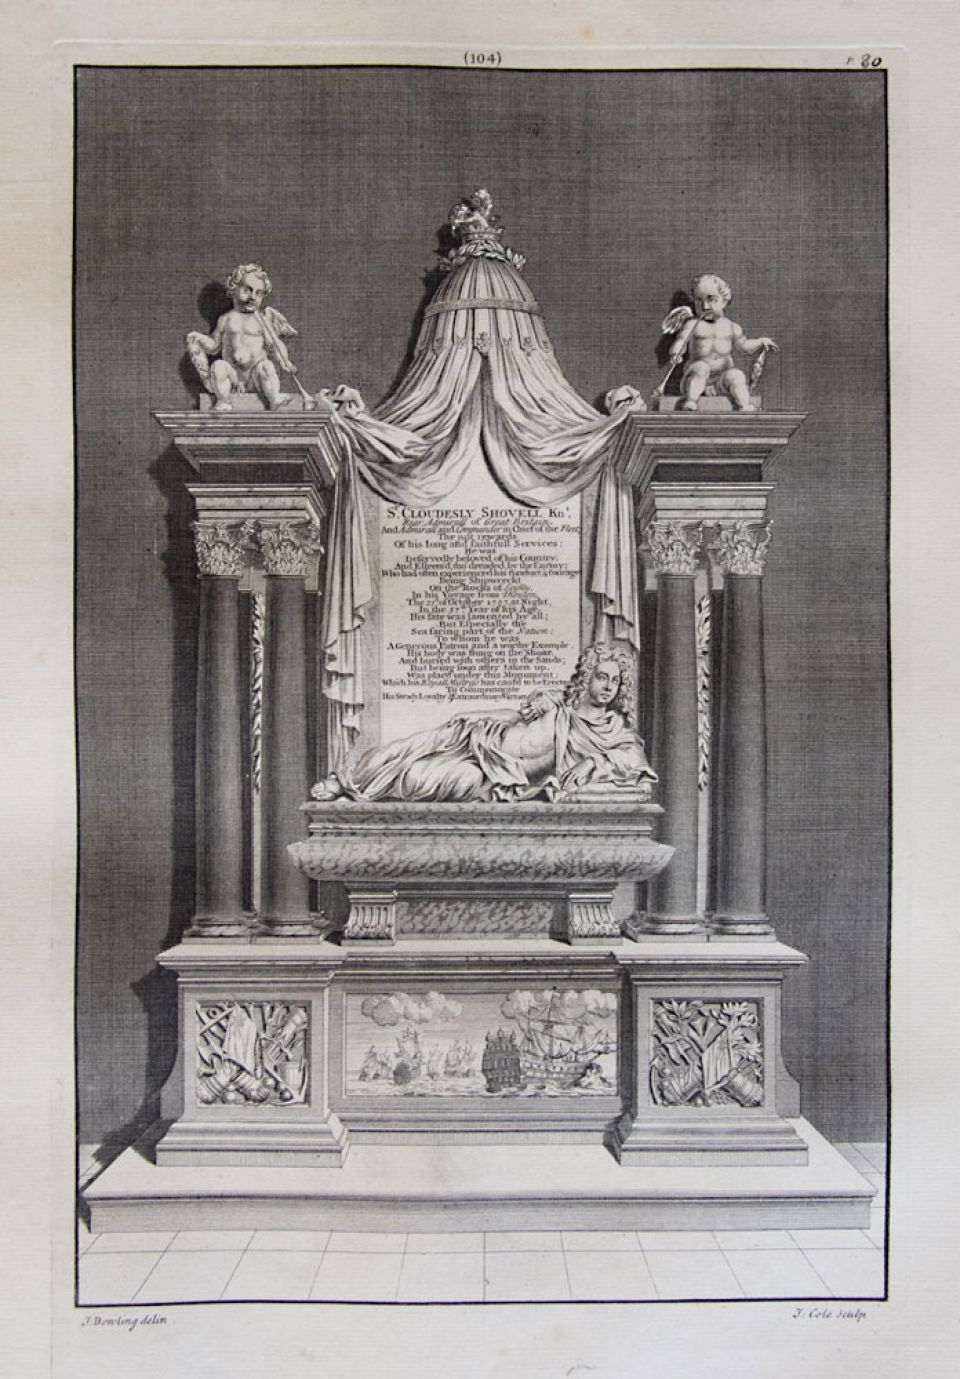 Sir Cloudesly Shovell's monument, designed and executed by Grinling Gibbons in the South Choir Aisle of Westminster Abbey (c. 1707)